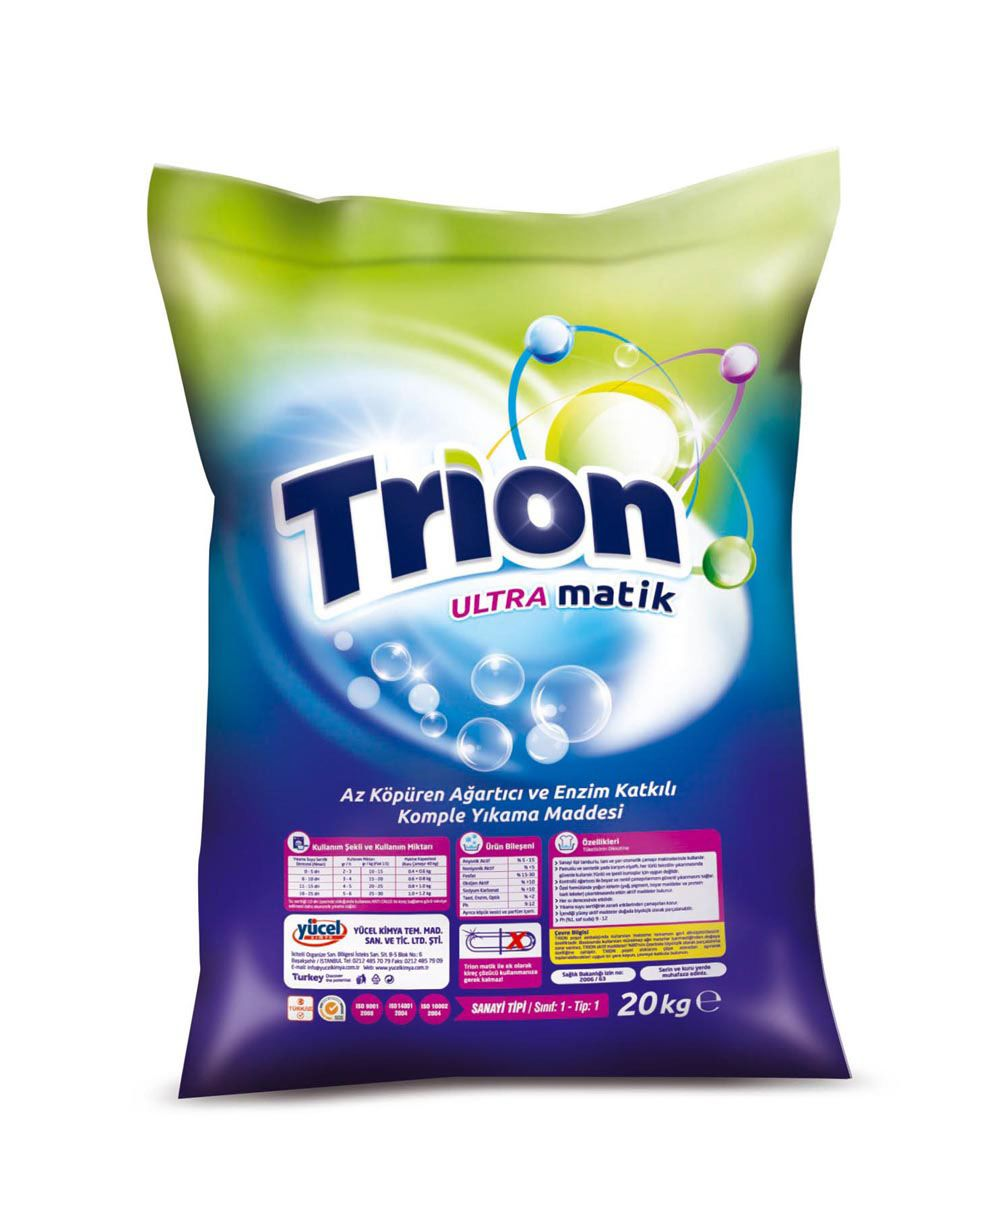 Trion Ultra Matik Laundry Detergent